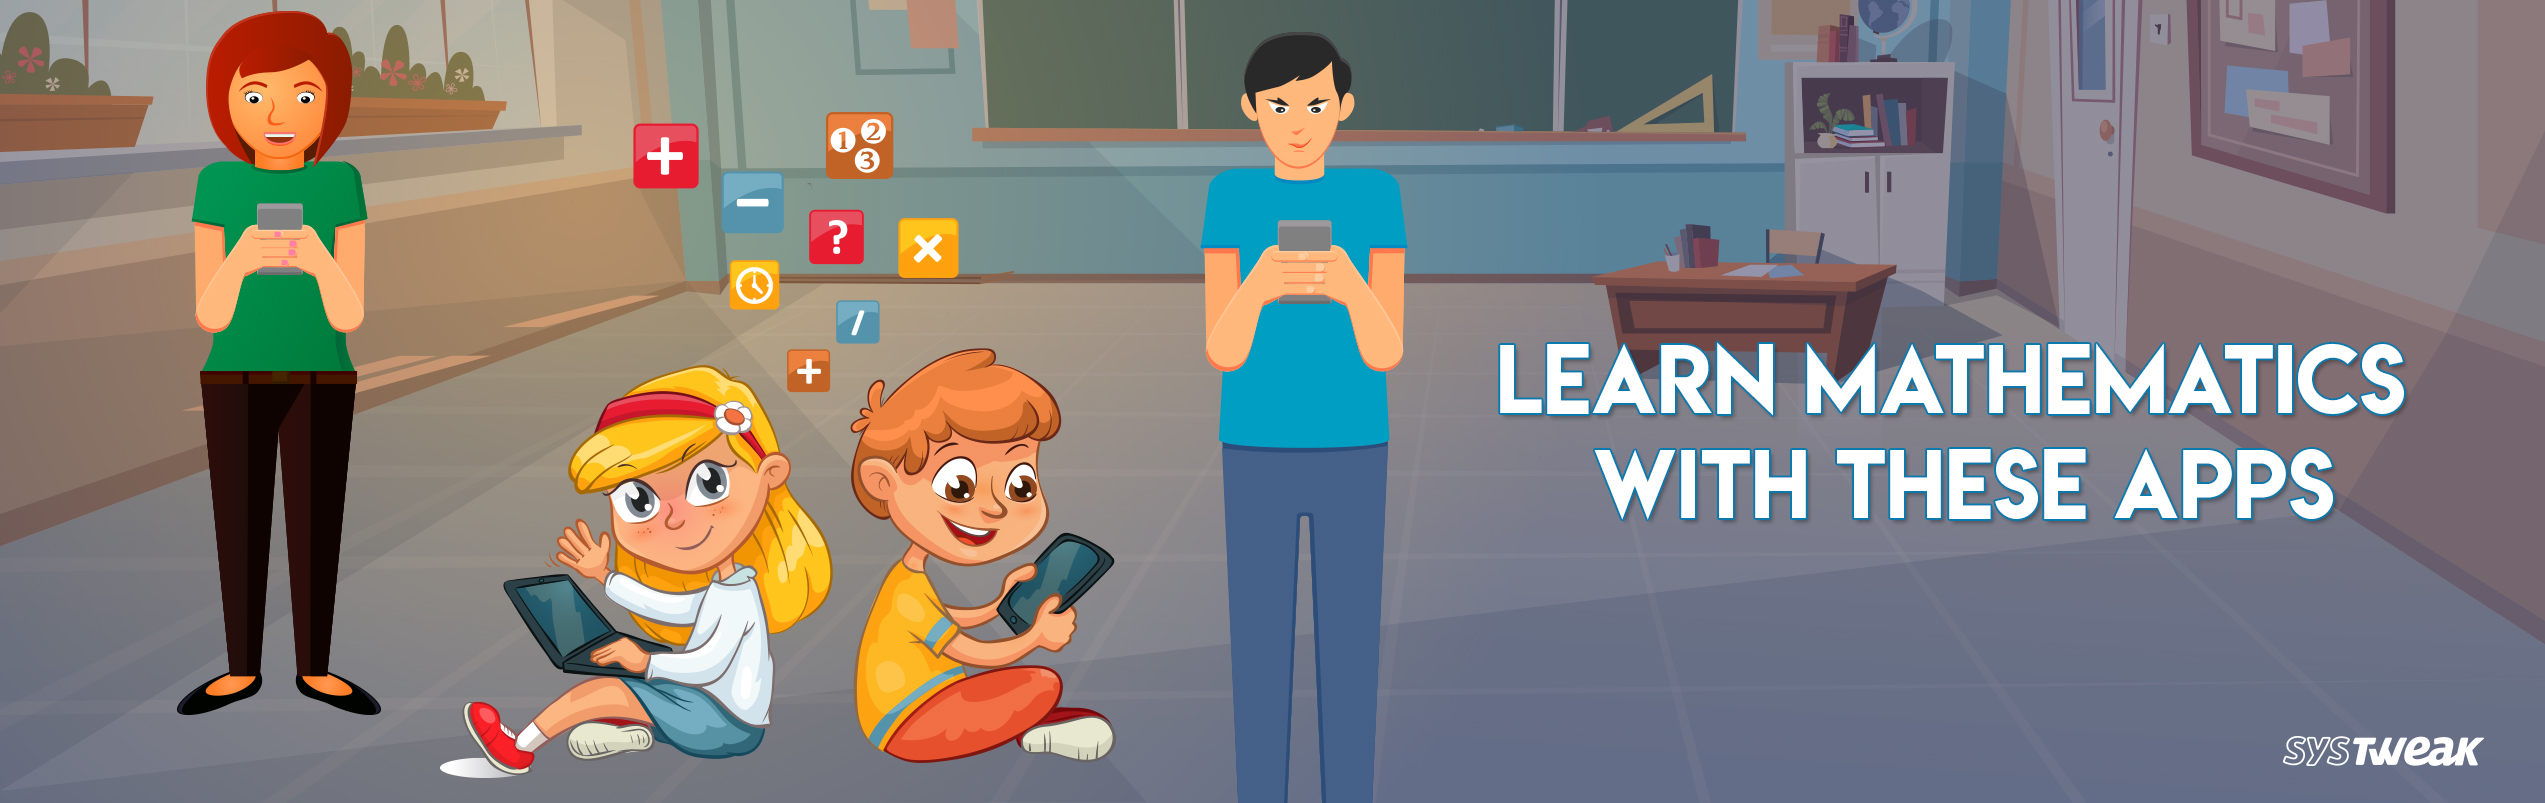 Best Math Learning Apps That You Should Know About